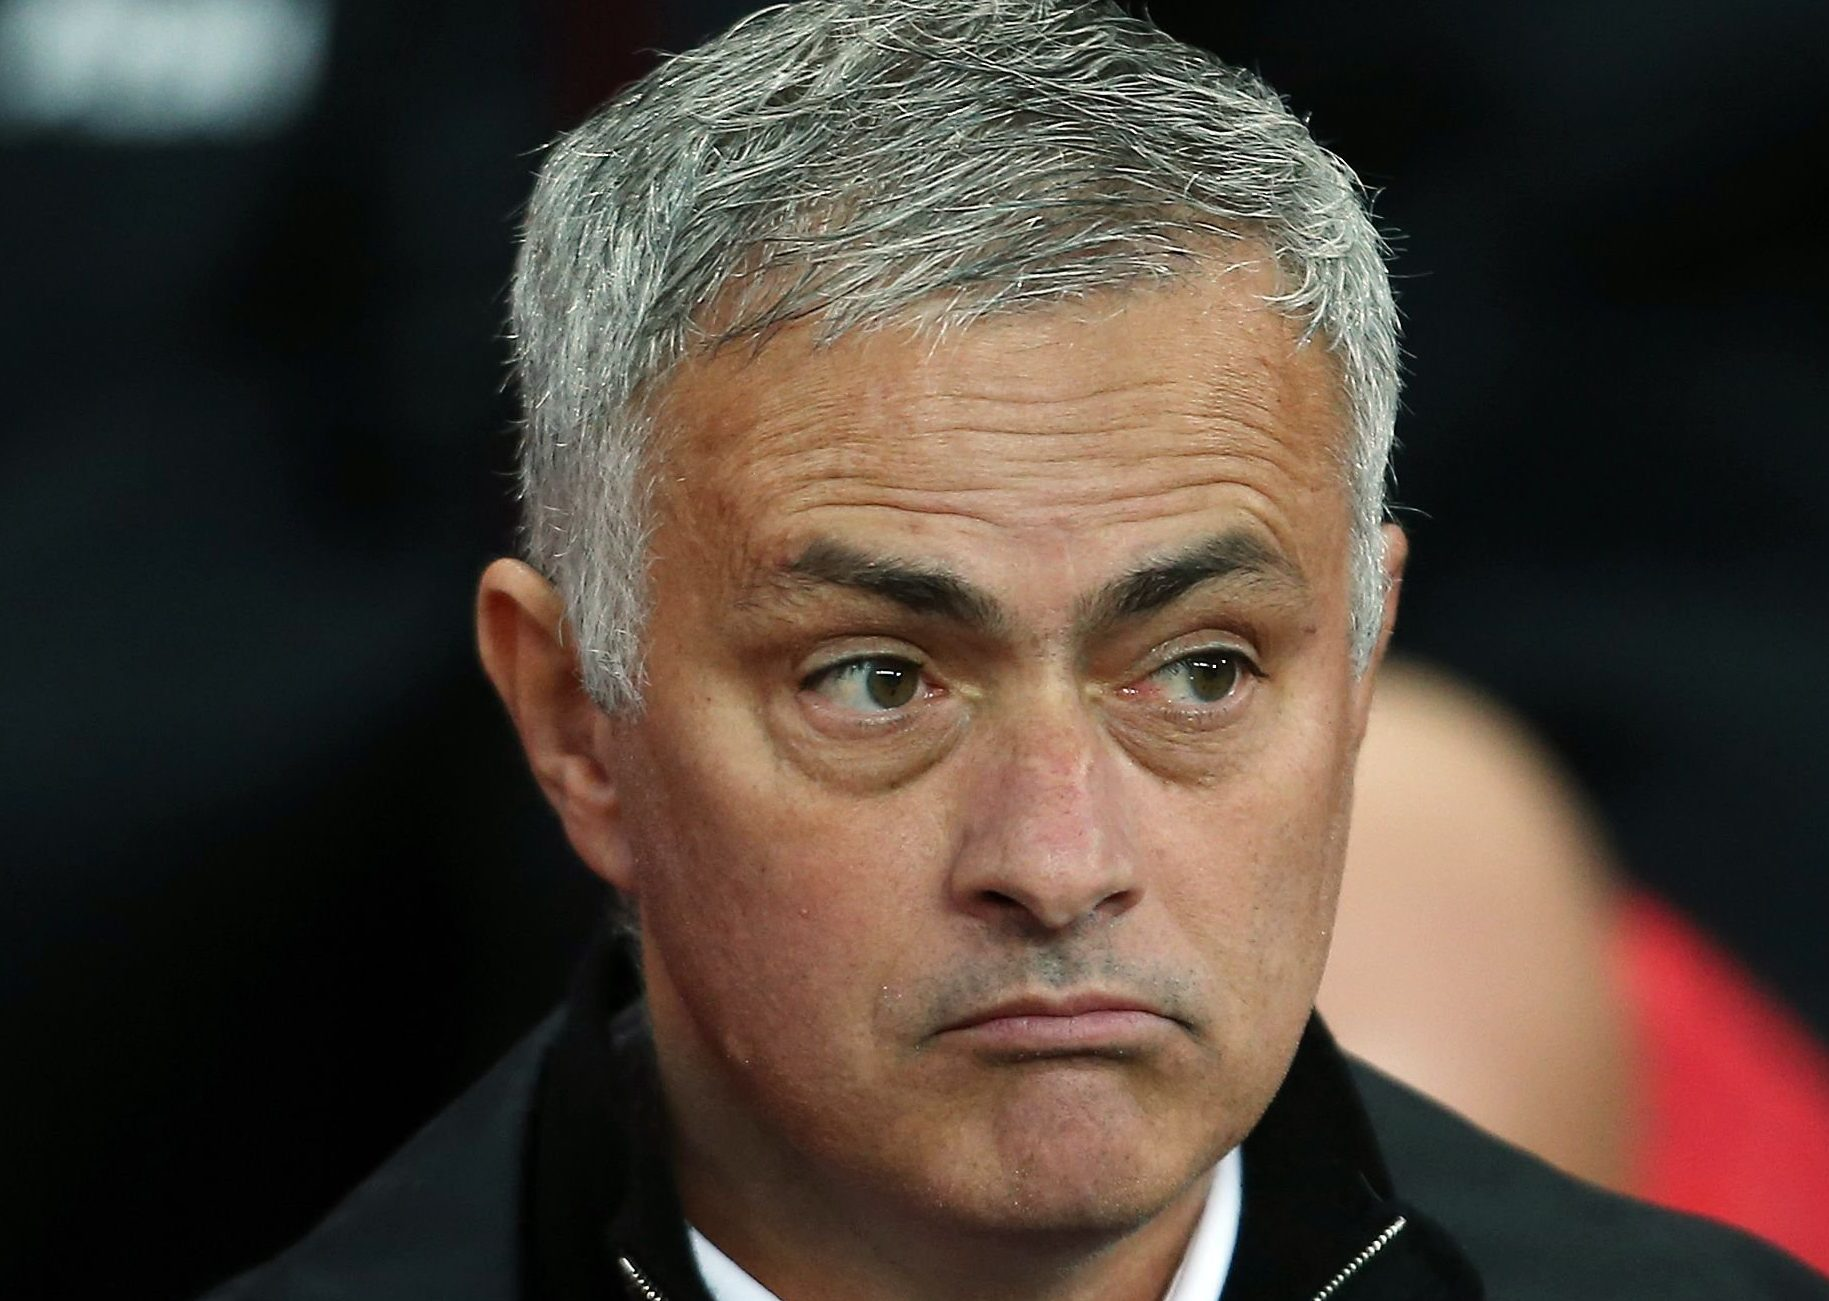 Jose Mourinho admits Manchester United's game plan against Manchester City was ruined because Marouane Fellaini started